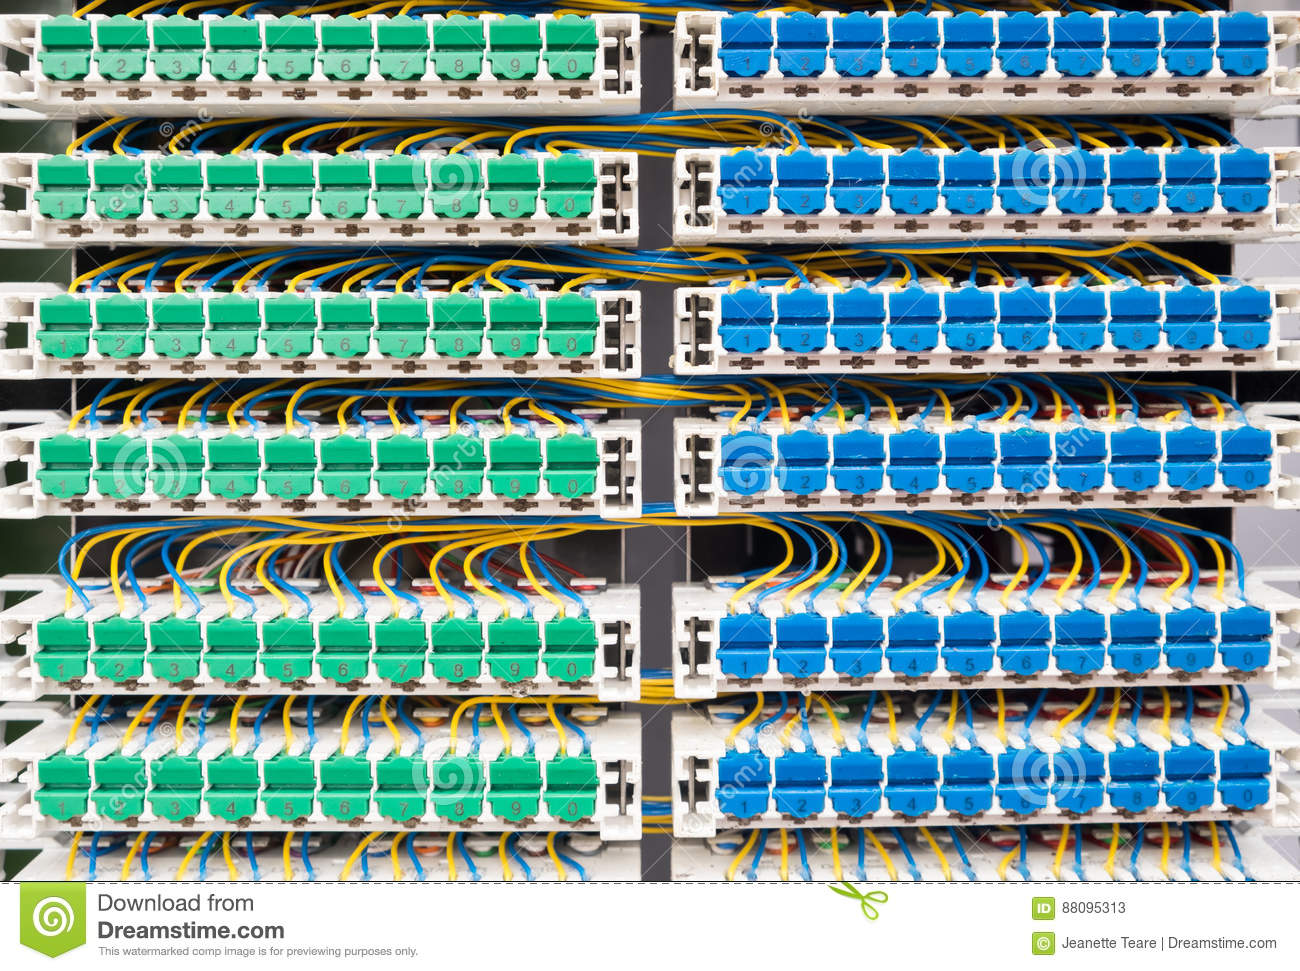 hight resolution of broadband landline routing equipment color coded neat wiring